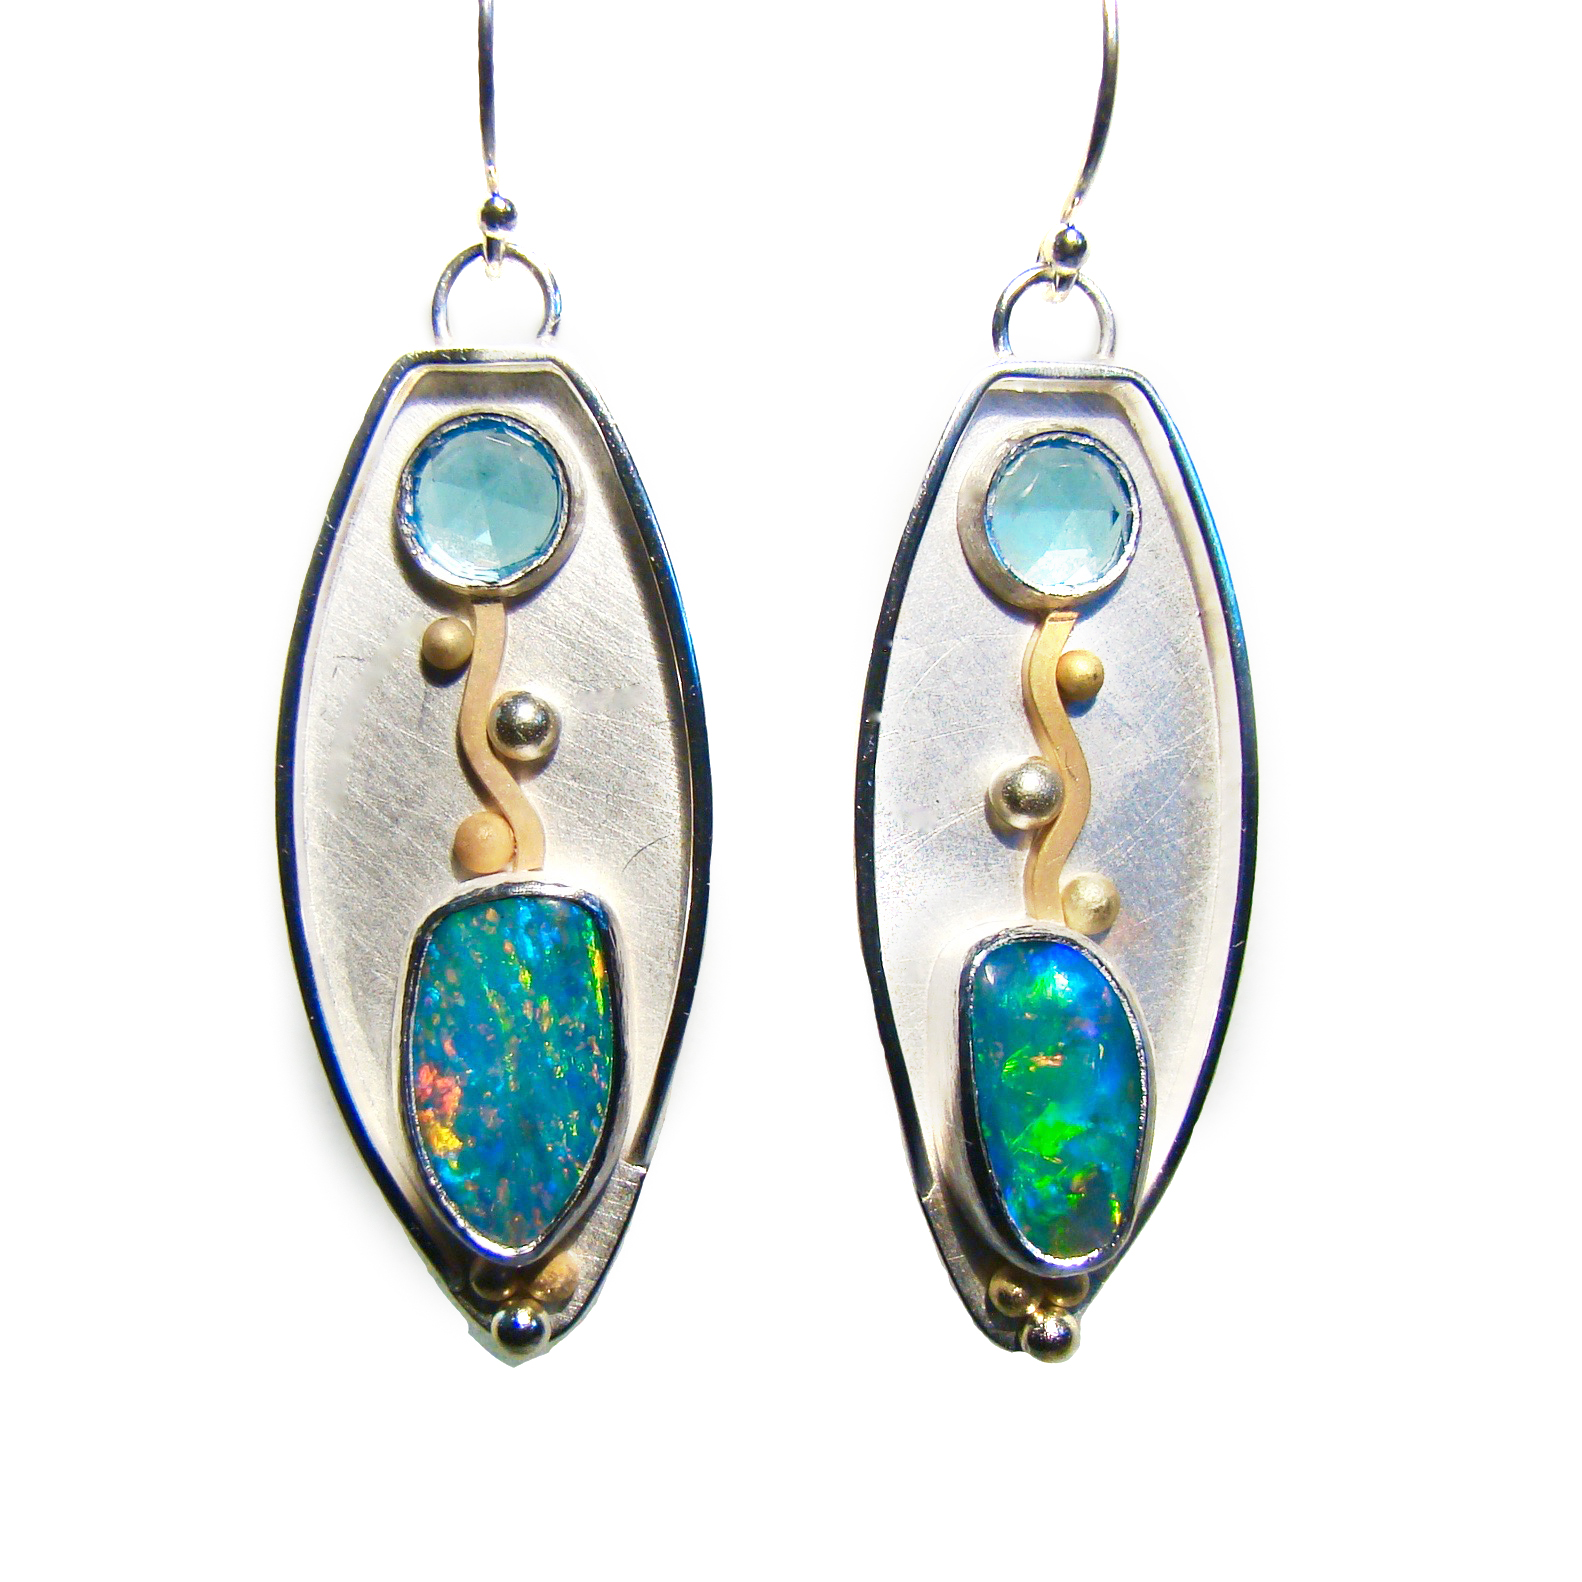 Topaz opal earrings #860.jpg